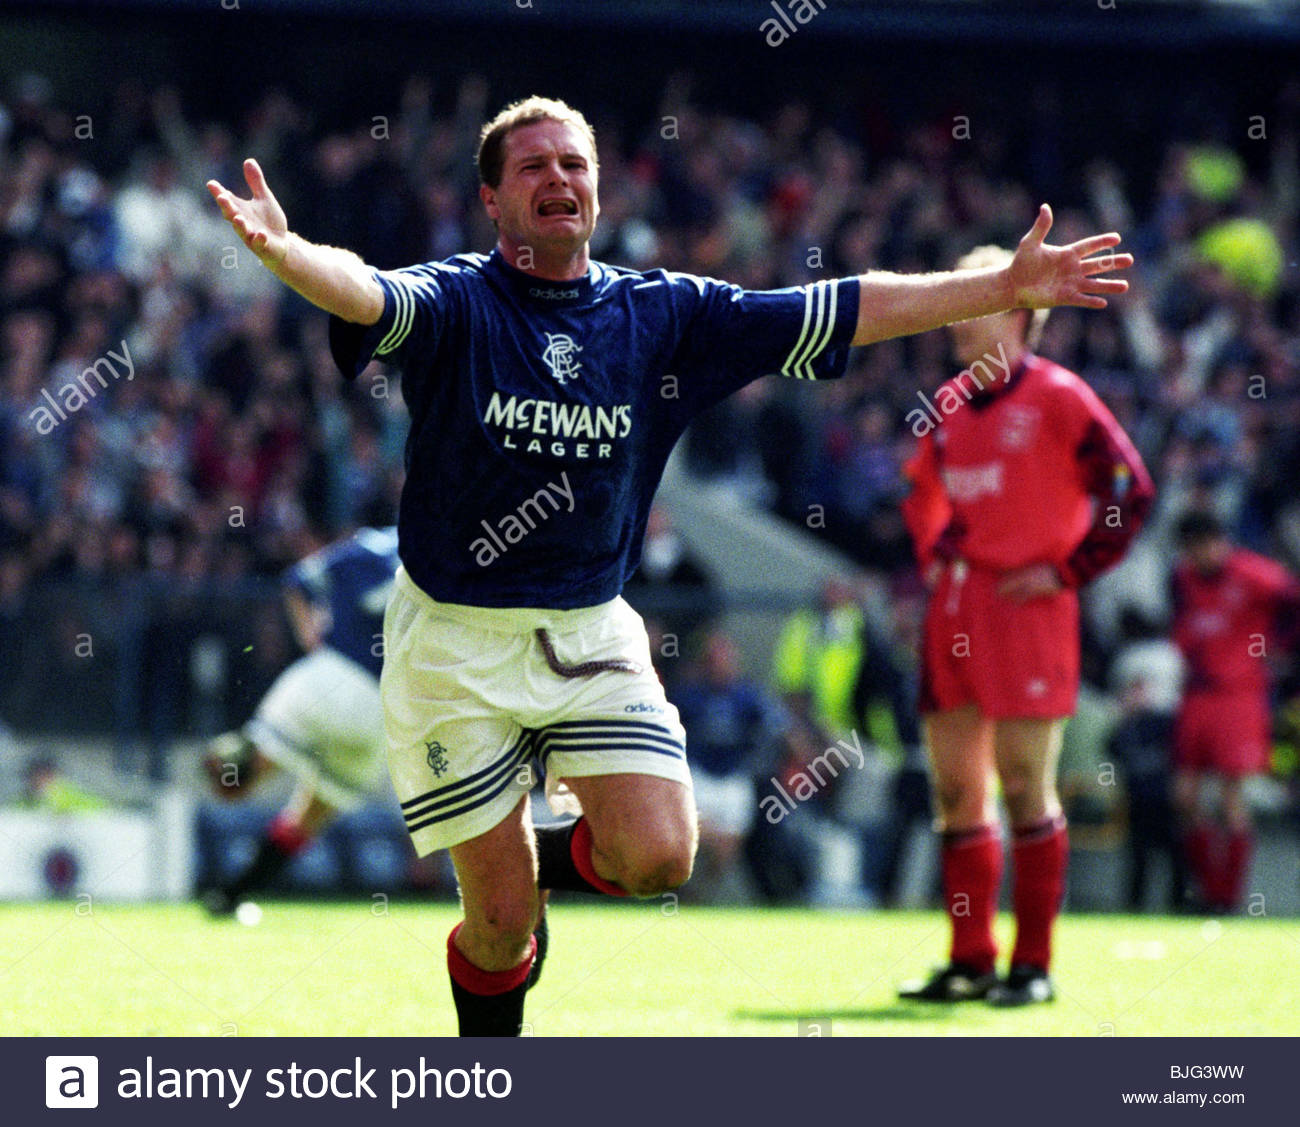 28/04/96 BELL'S PREMIER DIVISION RANGERS V ABERDEEN (3-1) IBROX - GLASGOW Paul Gascoigne celebrates after giving - Stock Image